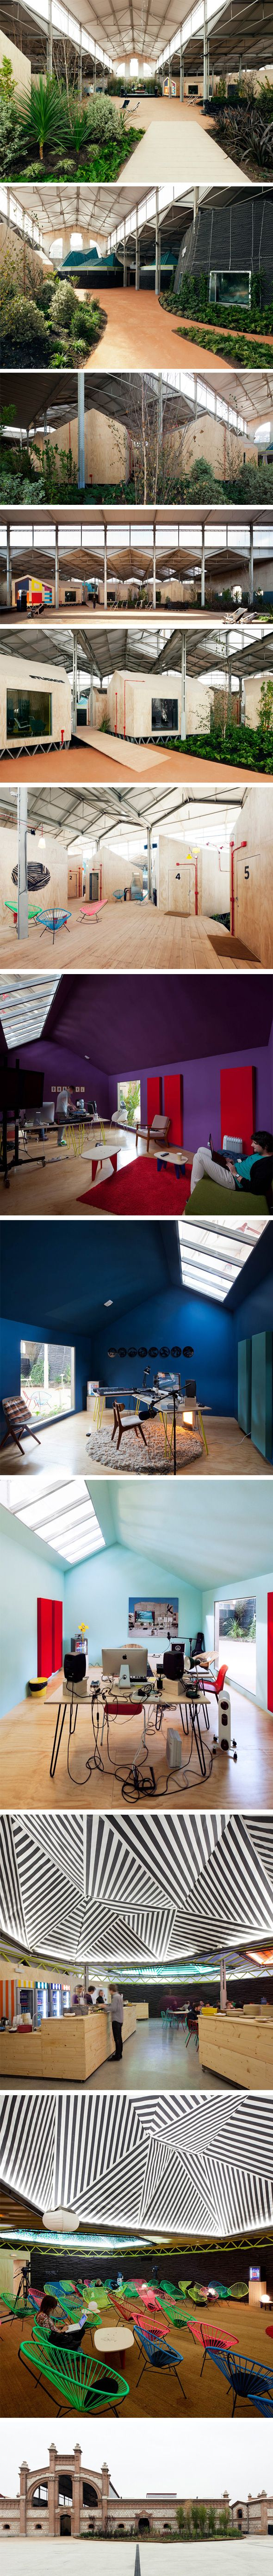 598 best architecture images on Pinterest